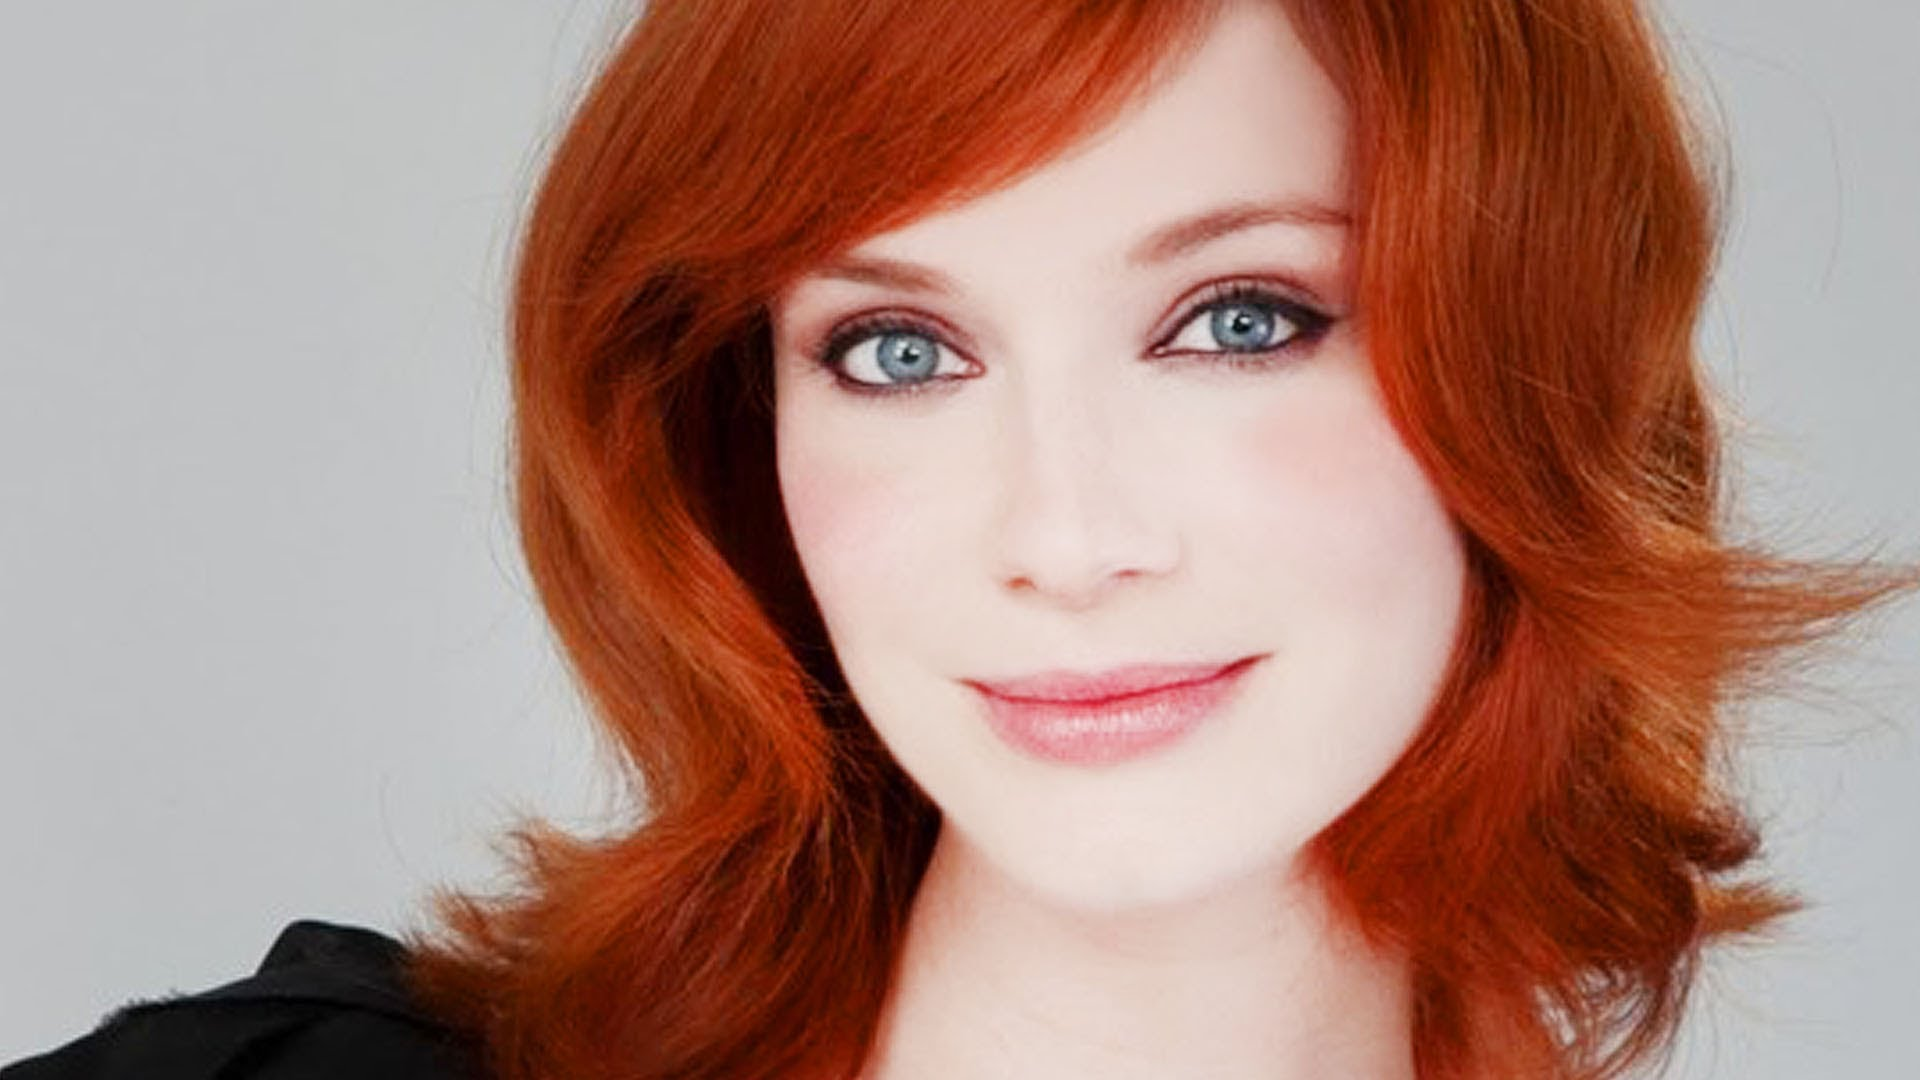 Christina Hendricks HD Wallpapers for desktop download 1920x1080